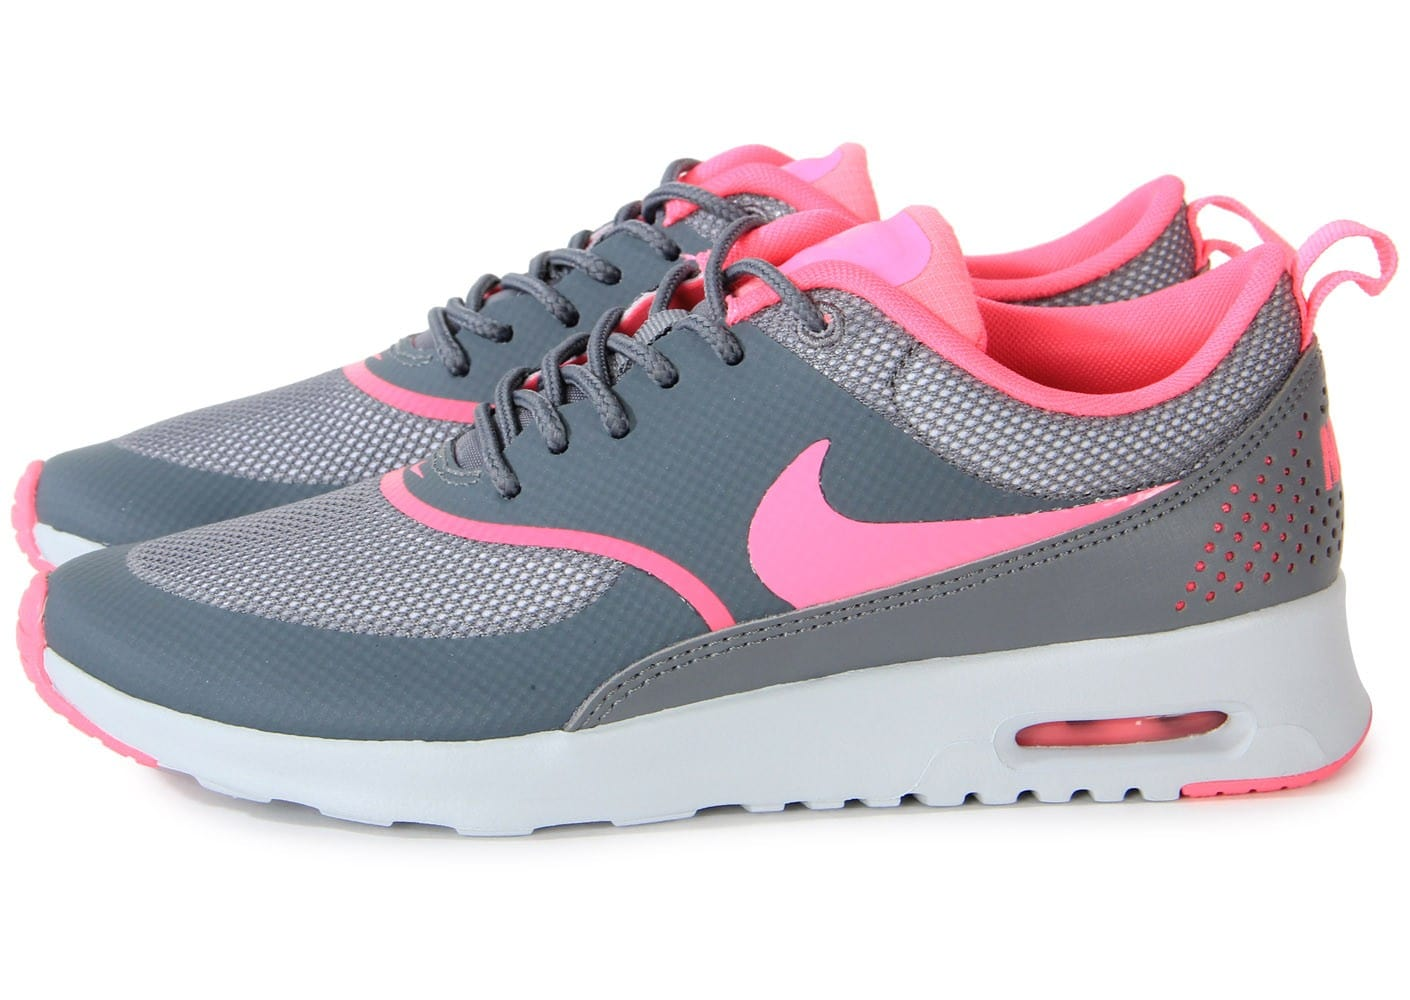 nike air max thea cool grey rose chaussures chaussures chausport. Black Bedroom Furniture Sets. Home Design Ideas